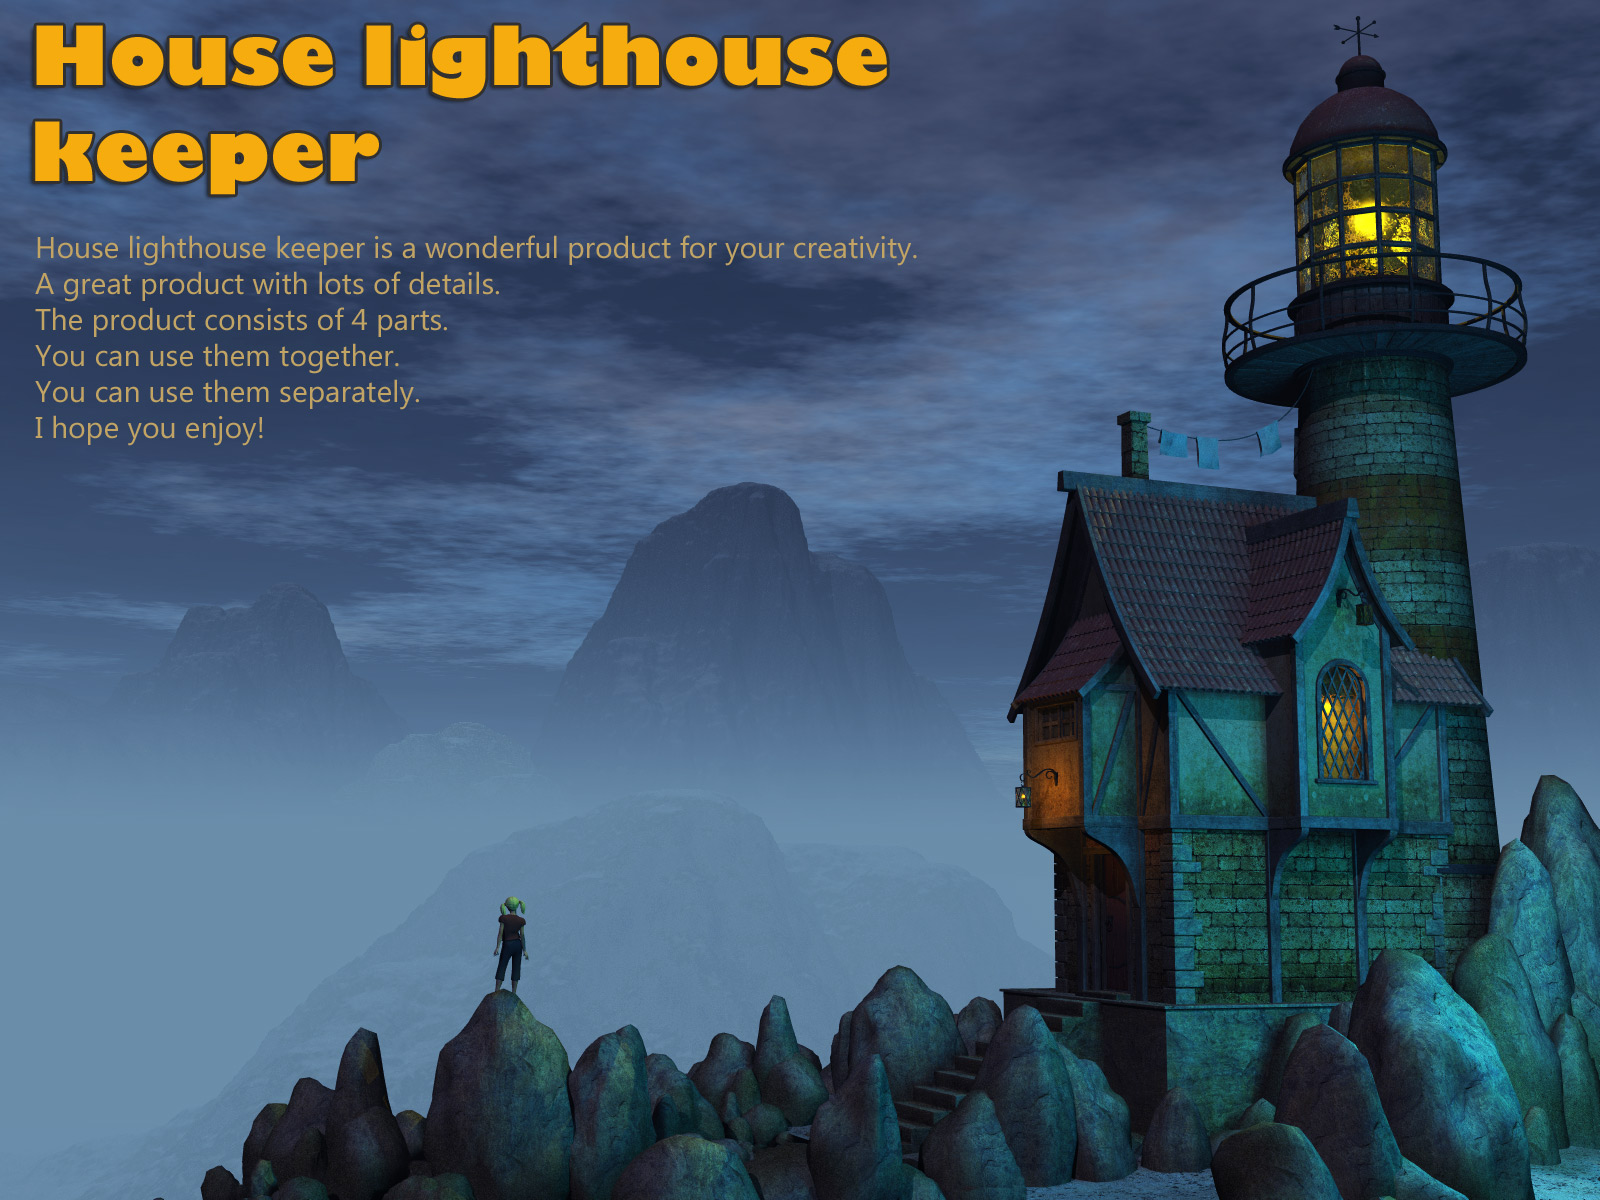 House lighthouse keeper by 1971s